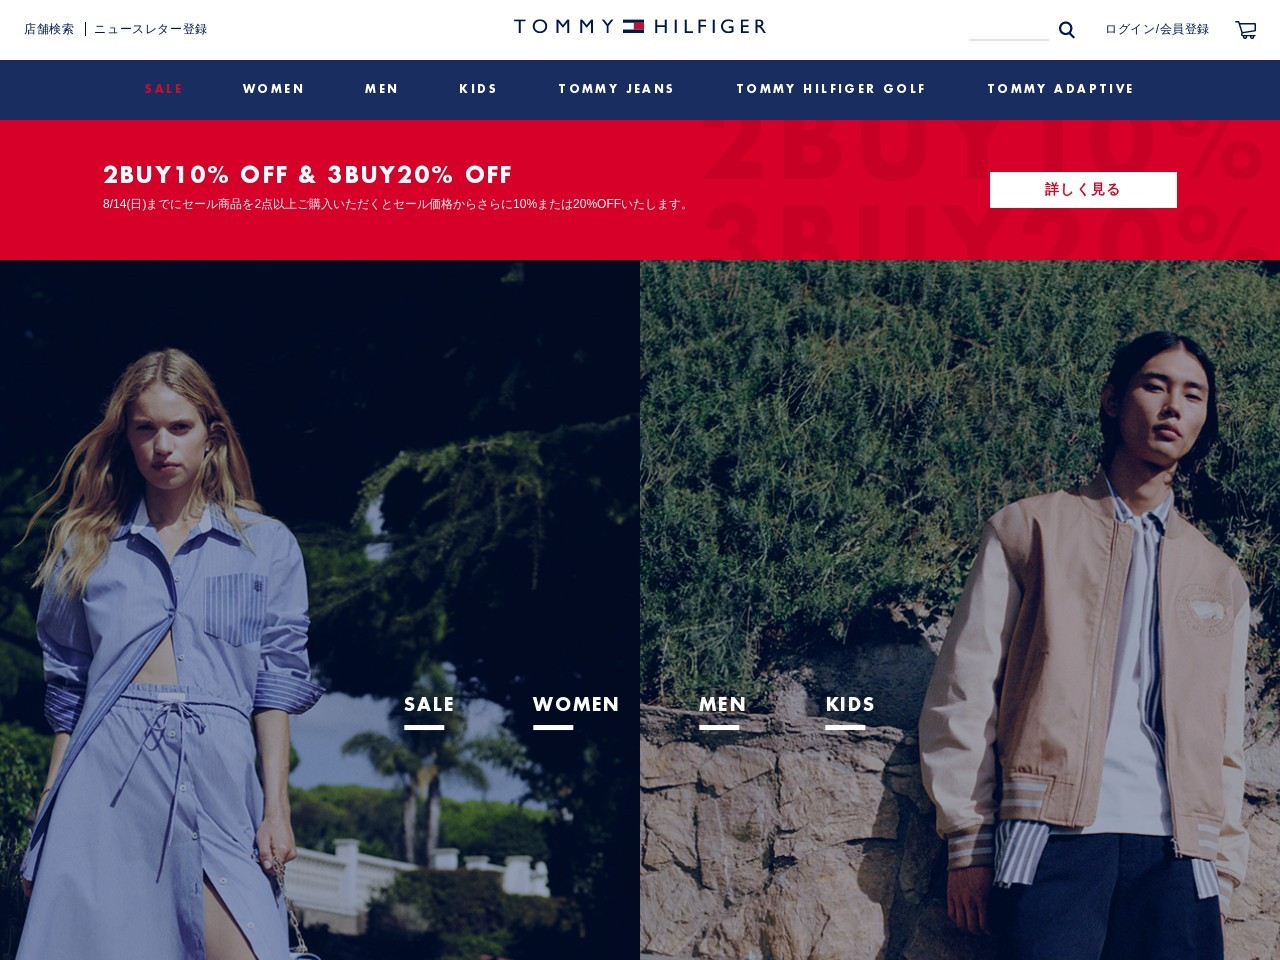 http://japan.tommy.com/pc/top/